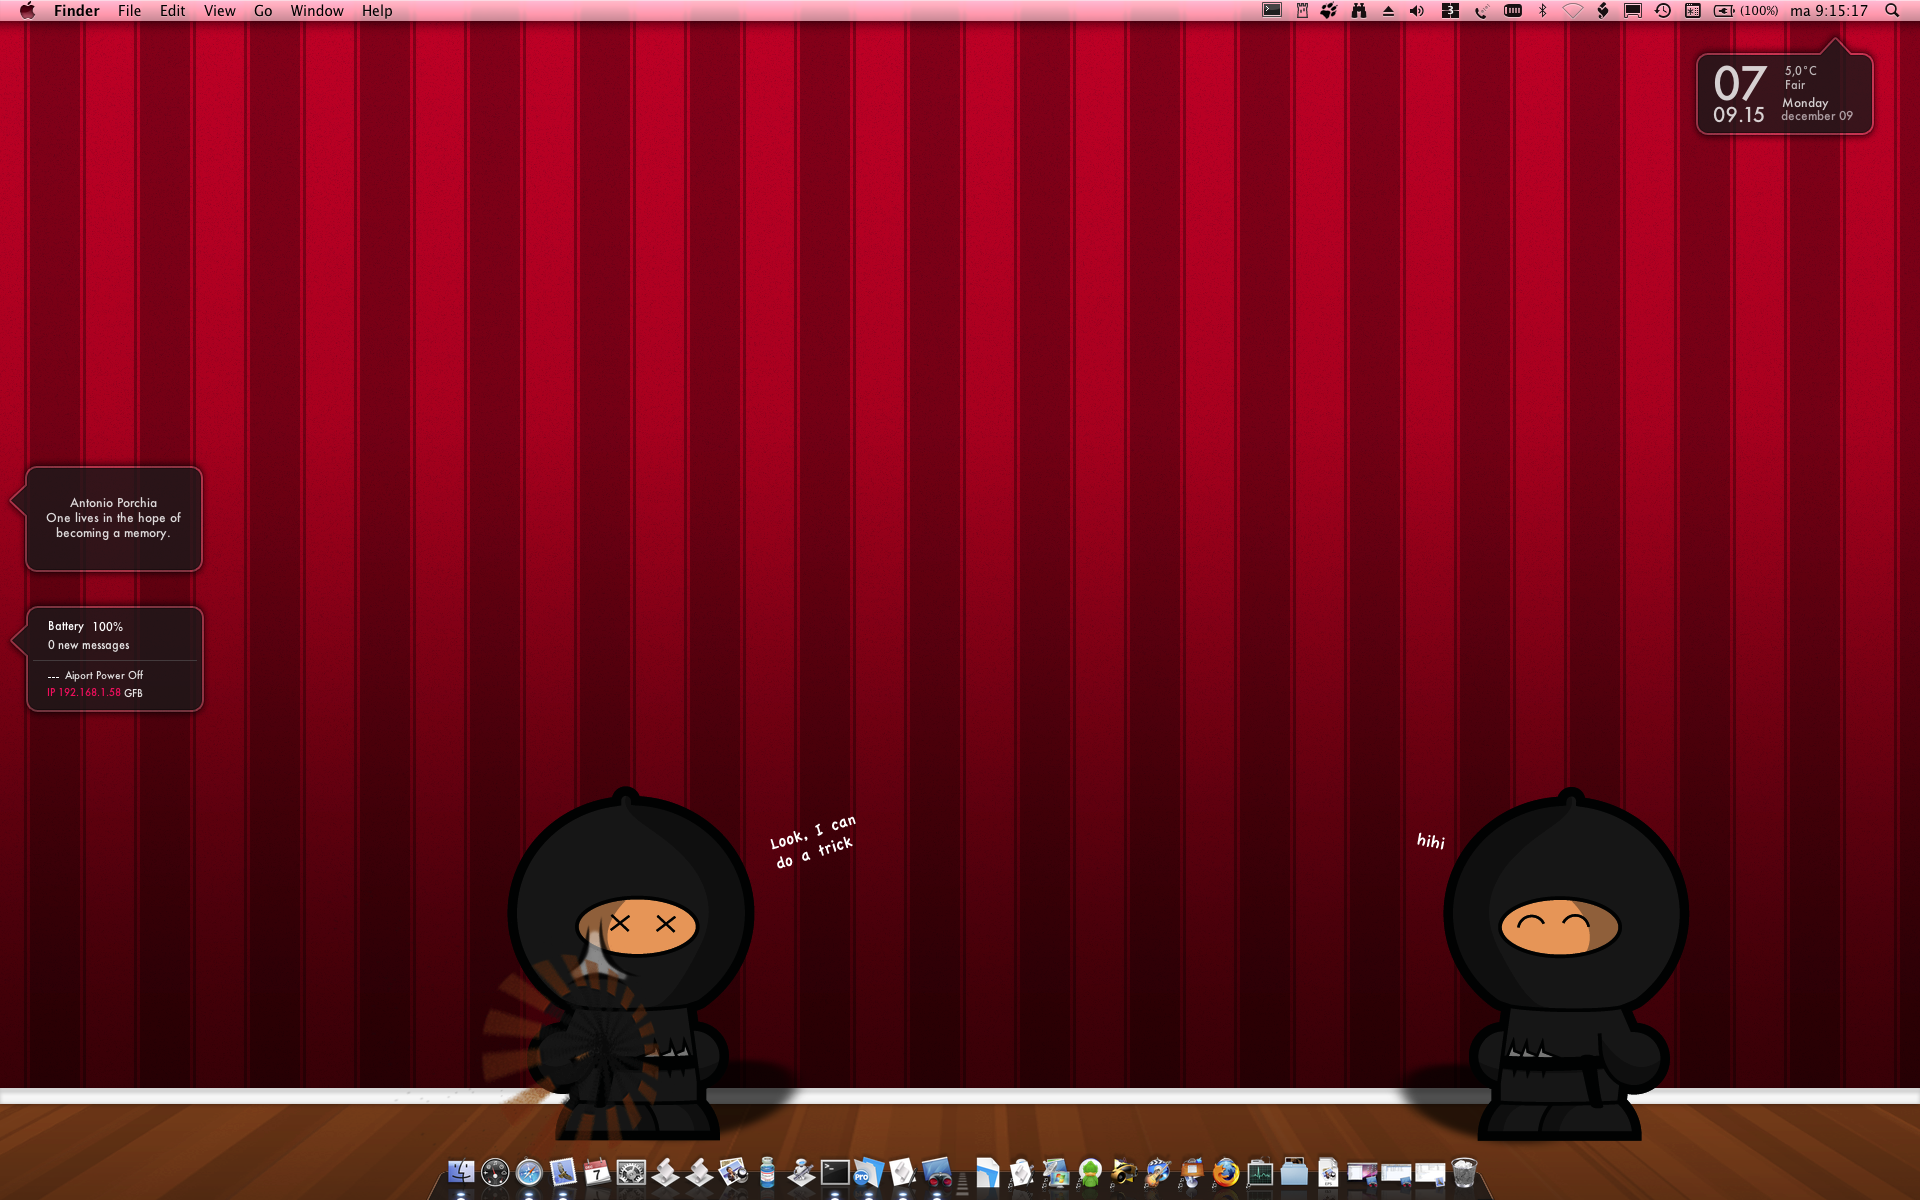 screenshot of ninja wallpaper by tomge